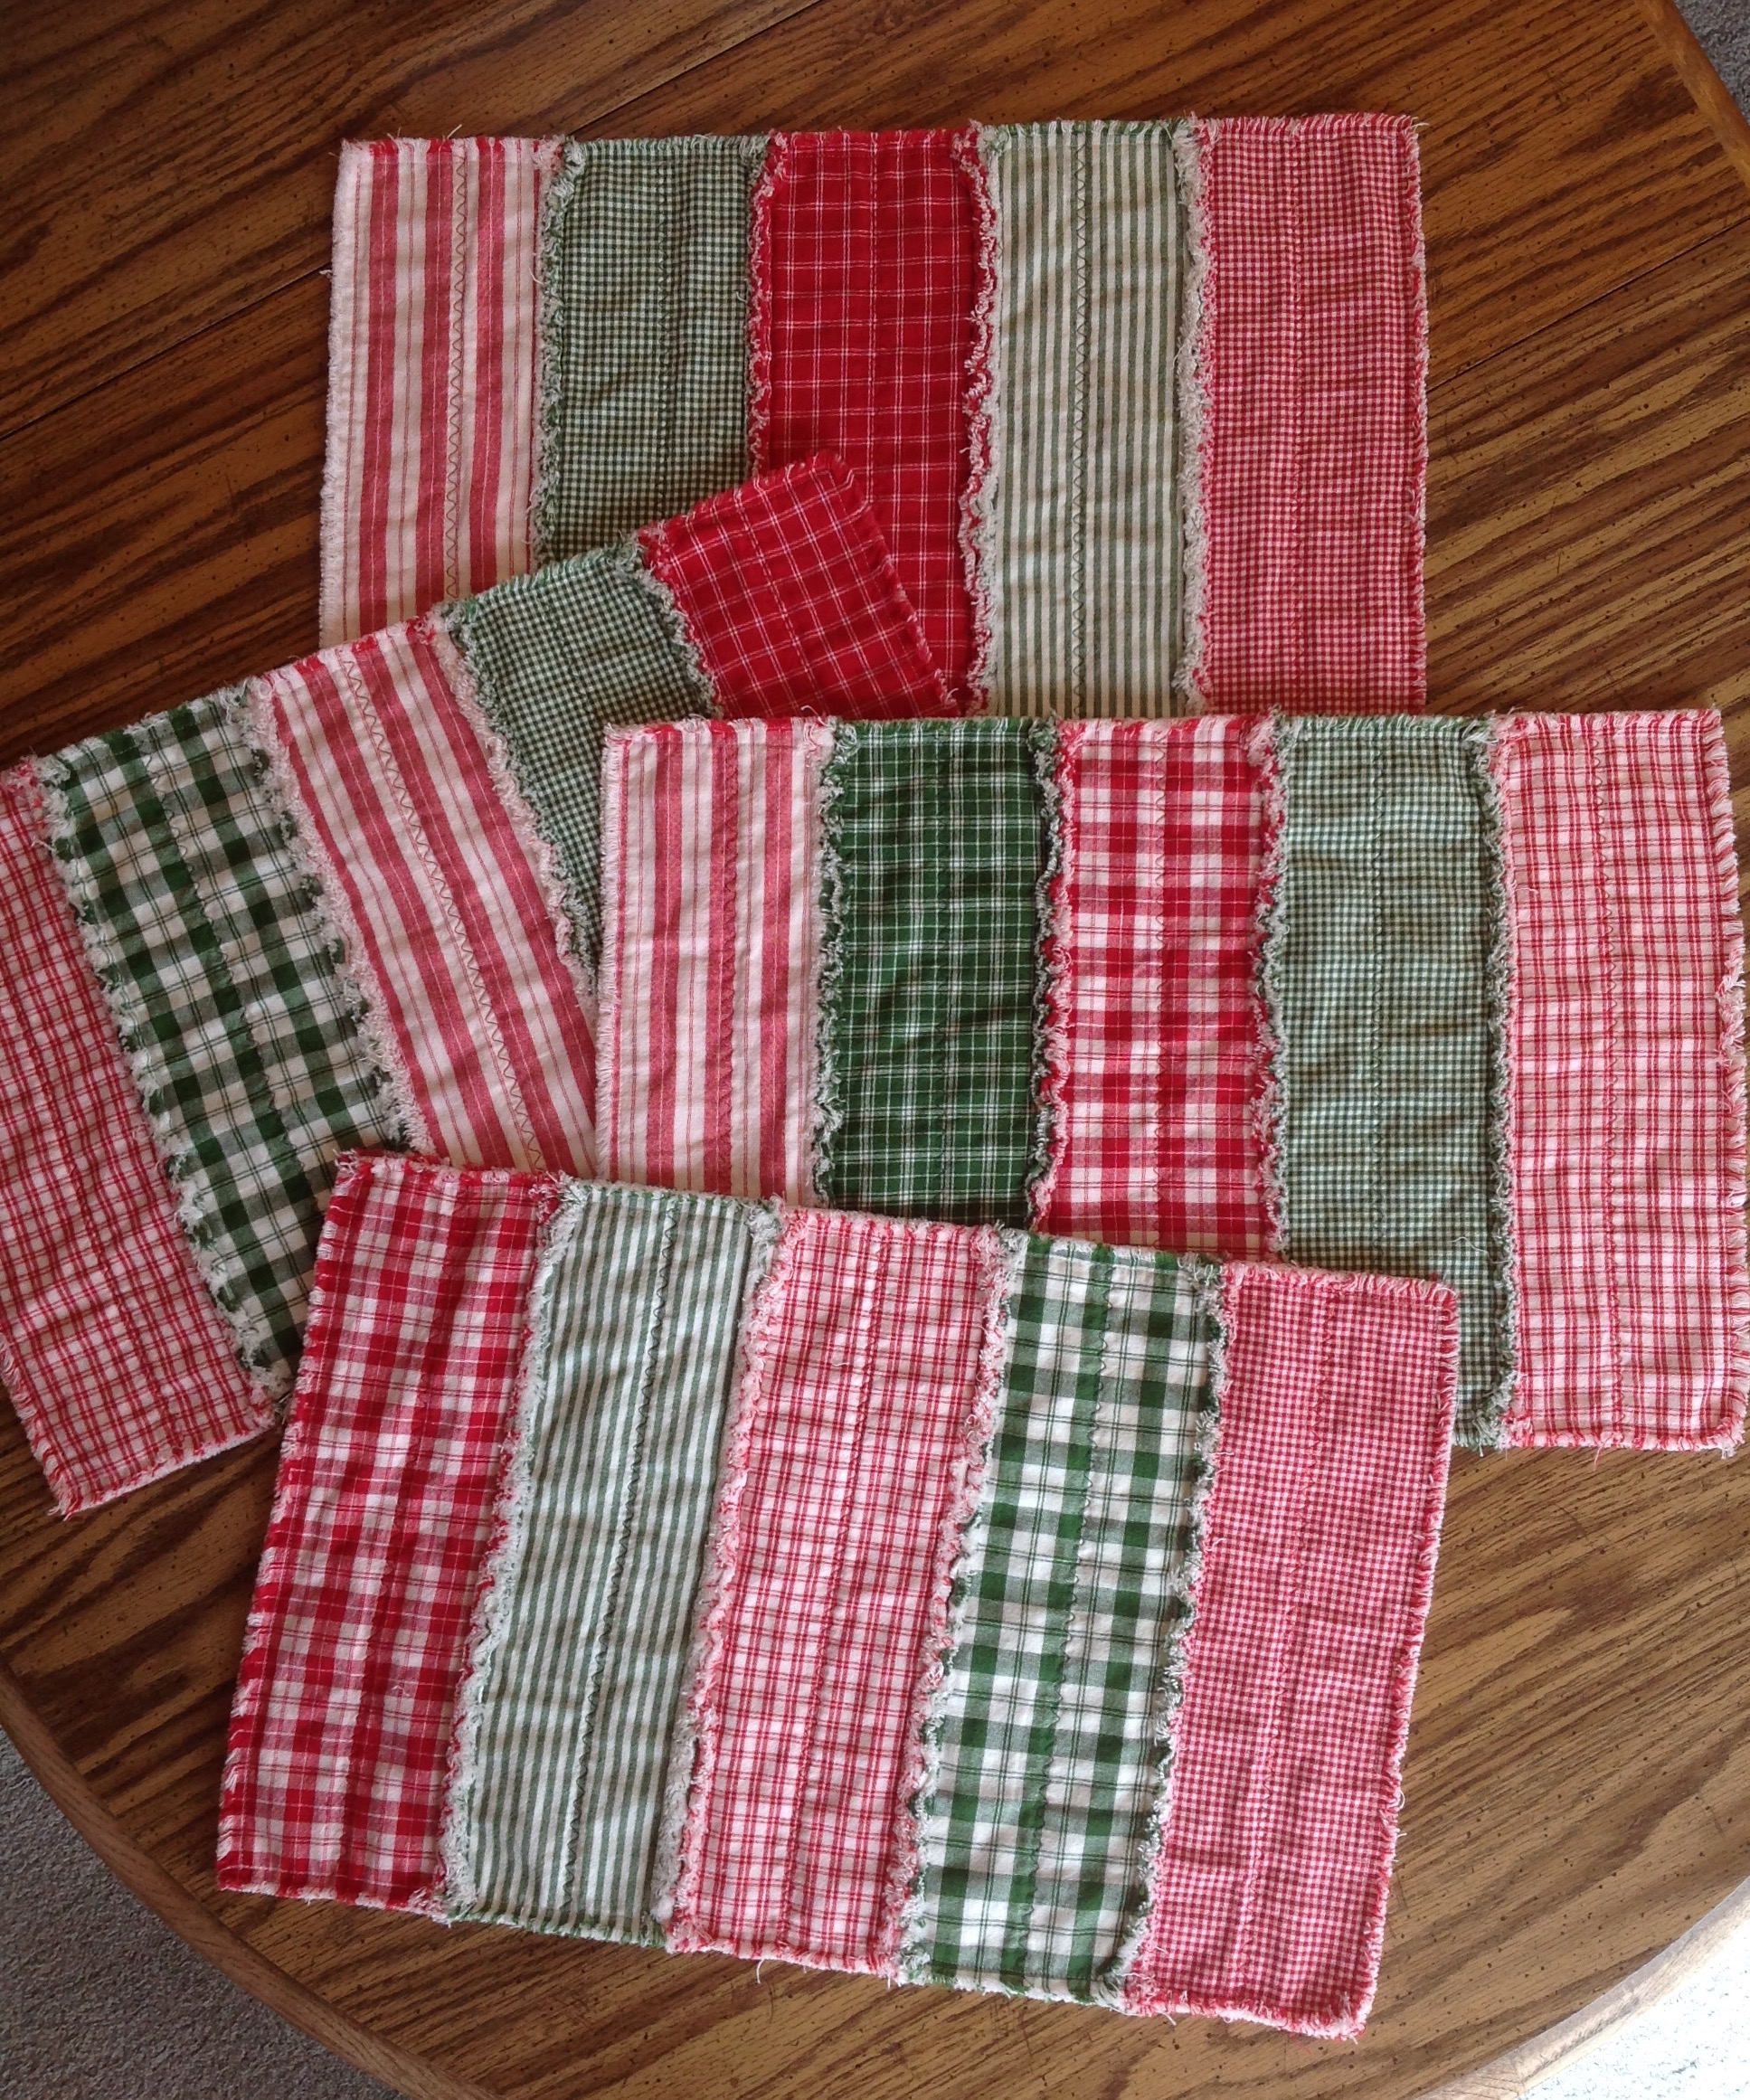 Set 4 Christmas Placemats, Quilted Placemats, Red Green Placemats ... : country quilted placemats - Adamdwight.com